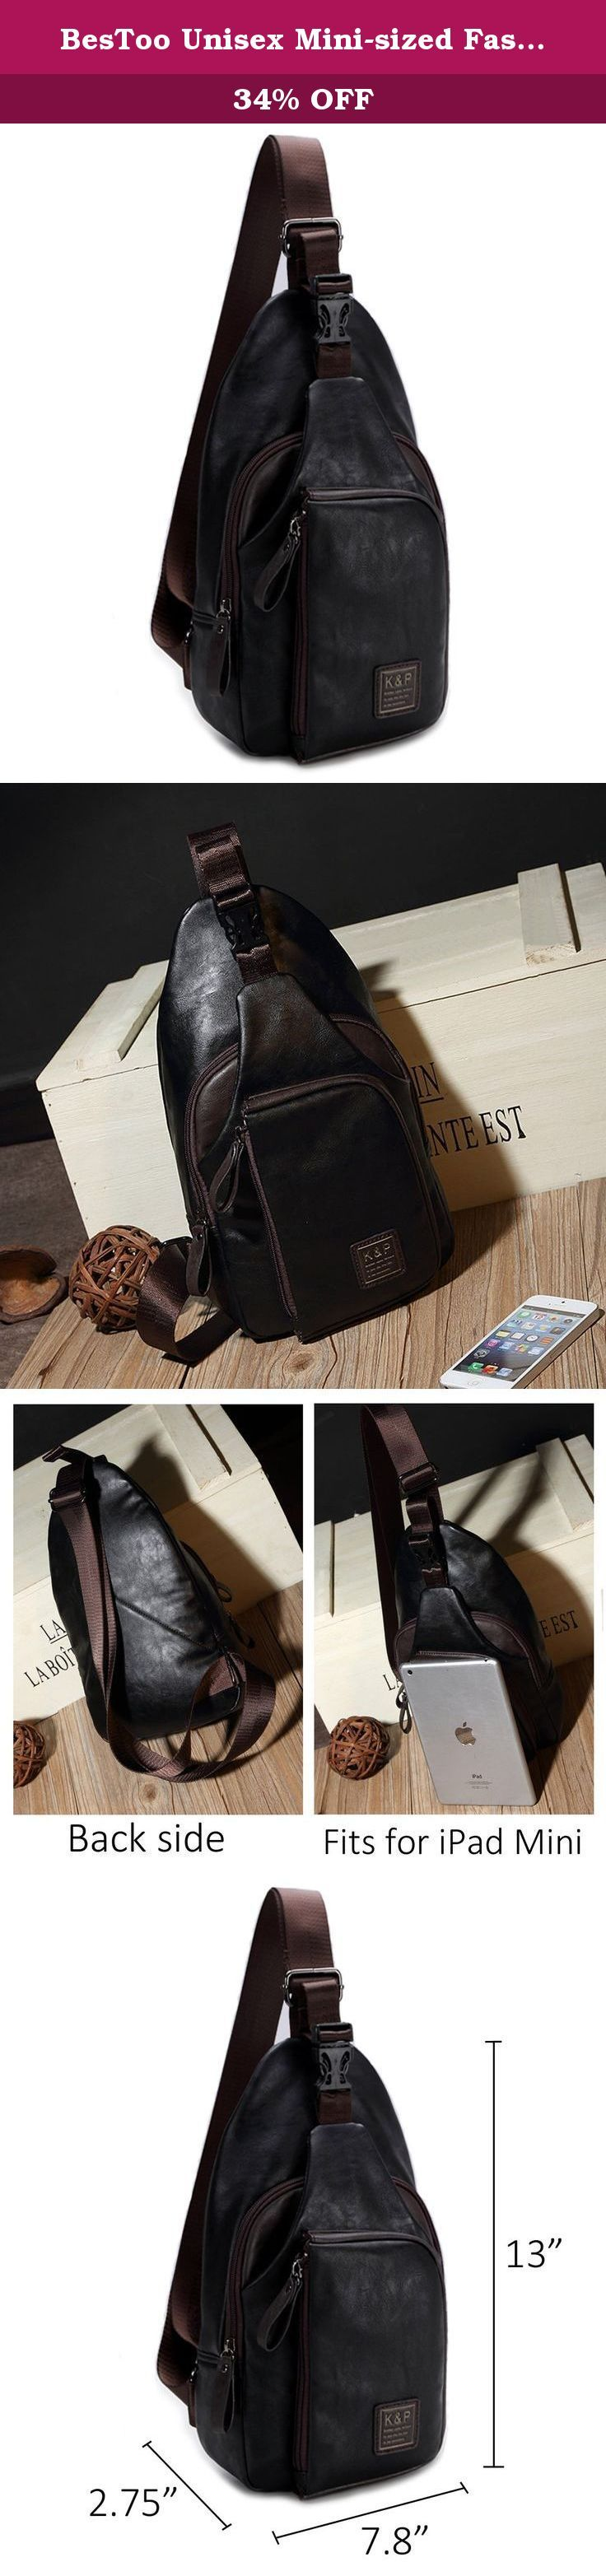 BesToo Unisex Mini-sized Fashion PU Leather Vintage London Unbalance Backpack Crossbody Sling Bag Chest Bag Multipurpose Daypack (Black X). Transport time: About 10 to 18 days delivery! About color: Please allow little color difference due to different camera screen show. Small fine shape portable break the rules definition,go on a tour without any burden.Free and easy,trends,advocating freedom,the pursuit of taste. .